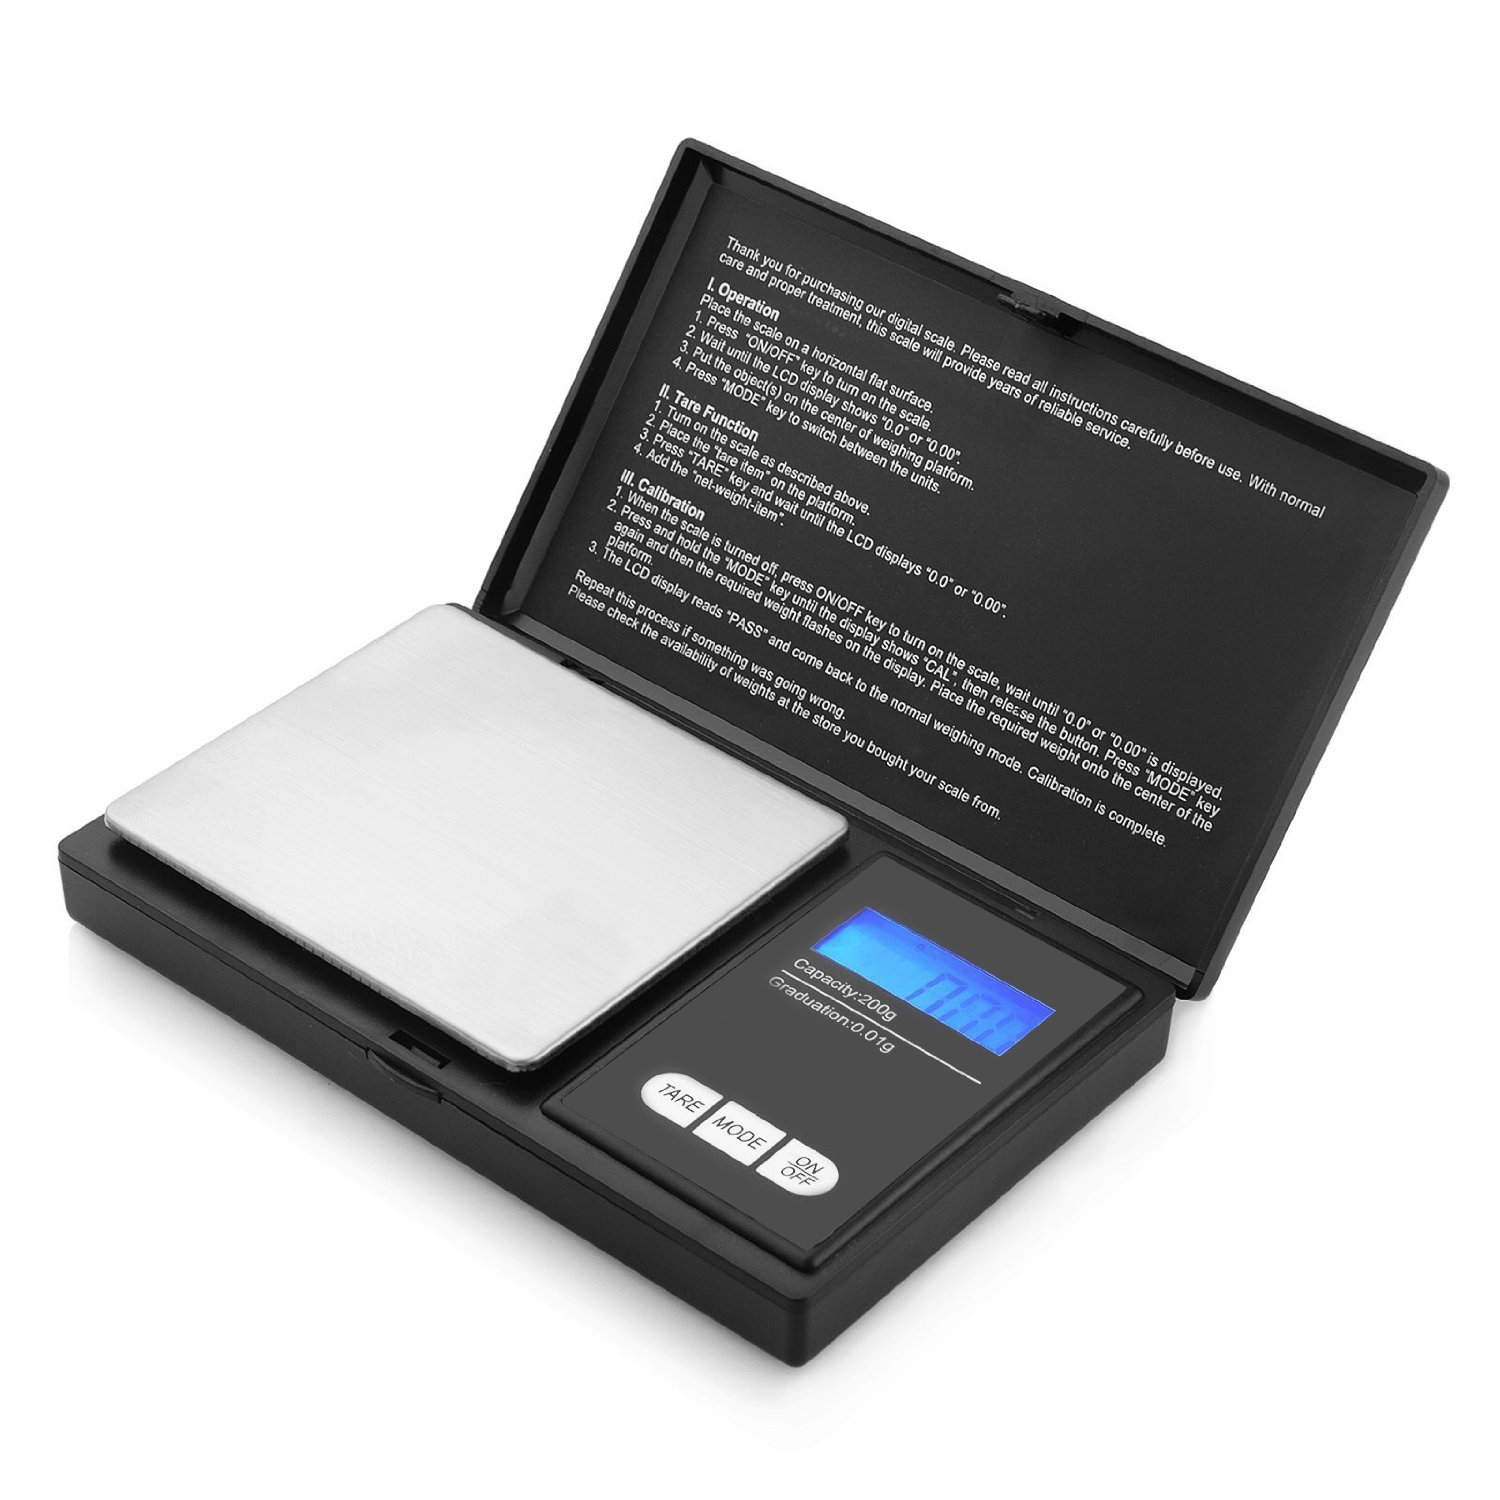 Digital Pocket Scale Akale [200g Capacity - 0.01g Accuracy] with Back-Lit LCD Screen & Tare Function - Black